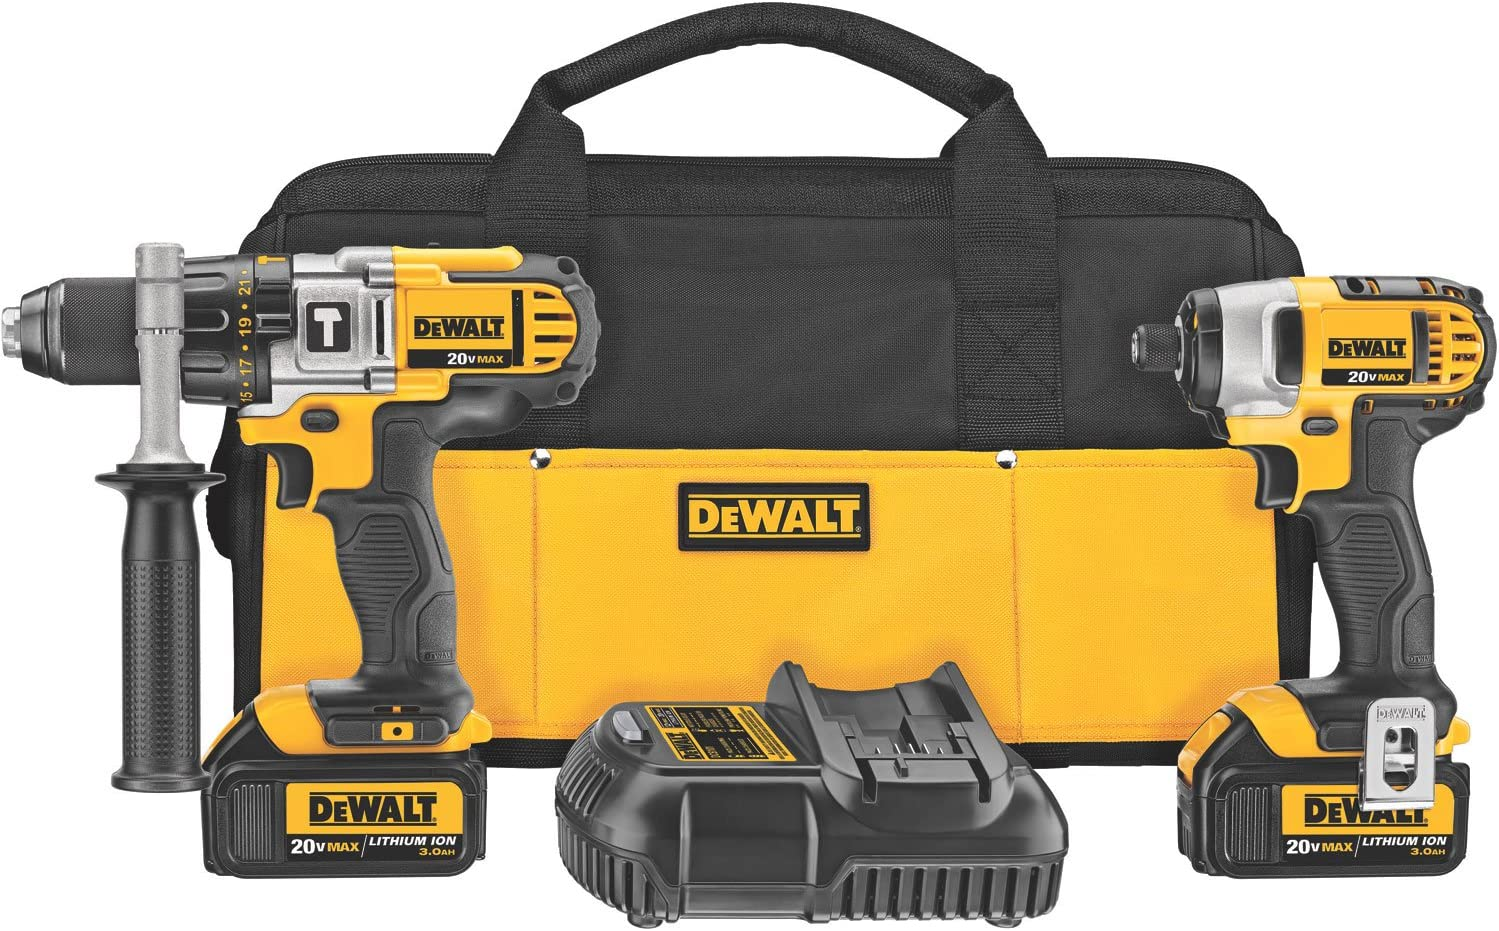 SmartEco 20V Lithium Ion Cordless 3-Tools Drill Driver Impact Driver Combo Kit with LED worklight 3 YEAR WARRANTY, 2x 2Ah batteries 1 battery charger included